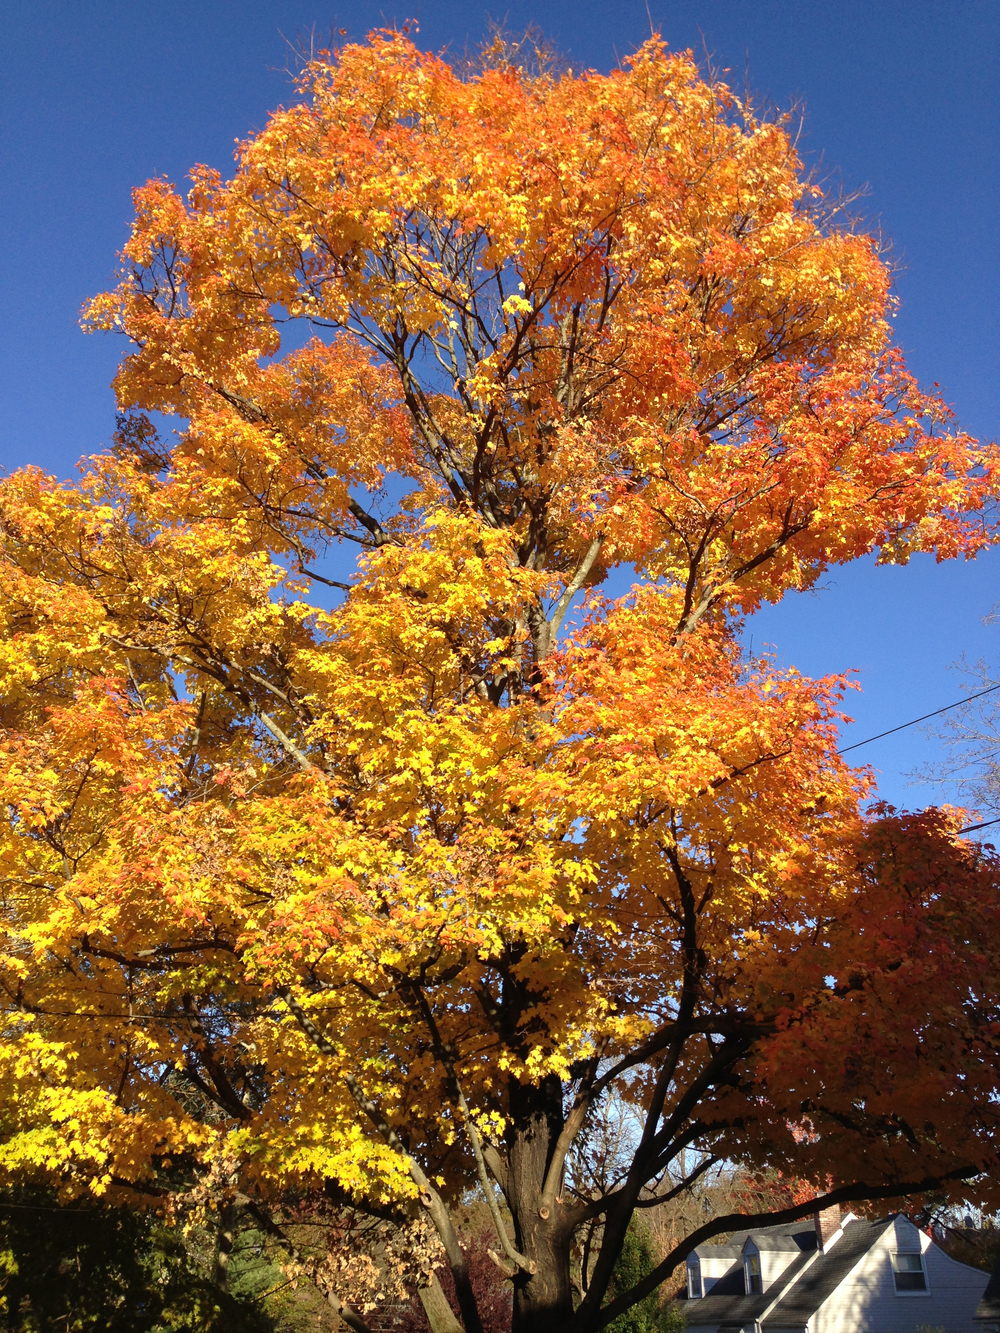 2014-11-02_15_26_08_Sugar_Maple_during_autumn_along_Patton_Drive_in_Ewing,_New_Jersey.jpg